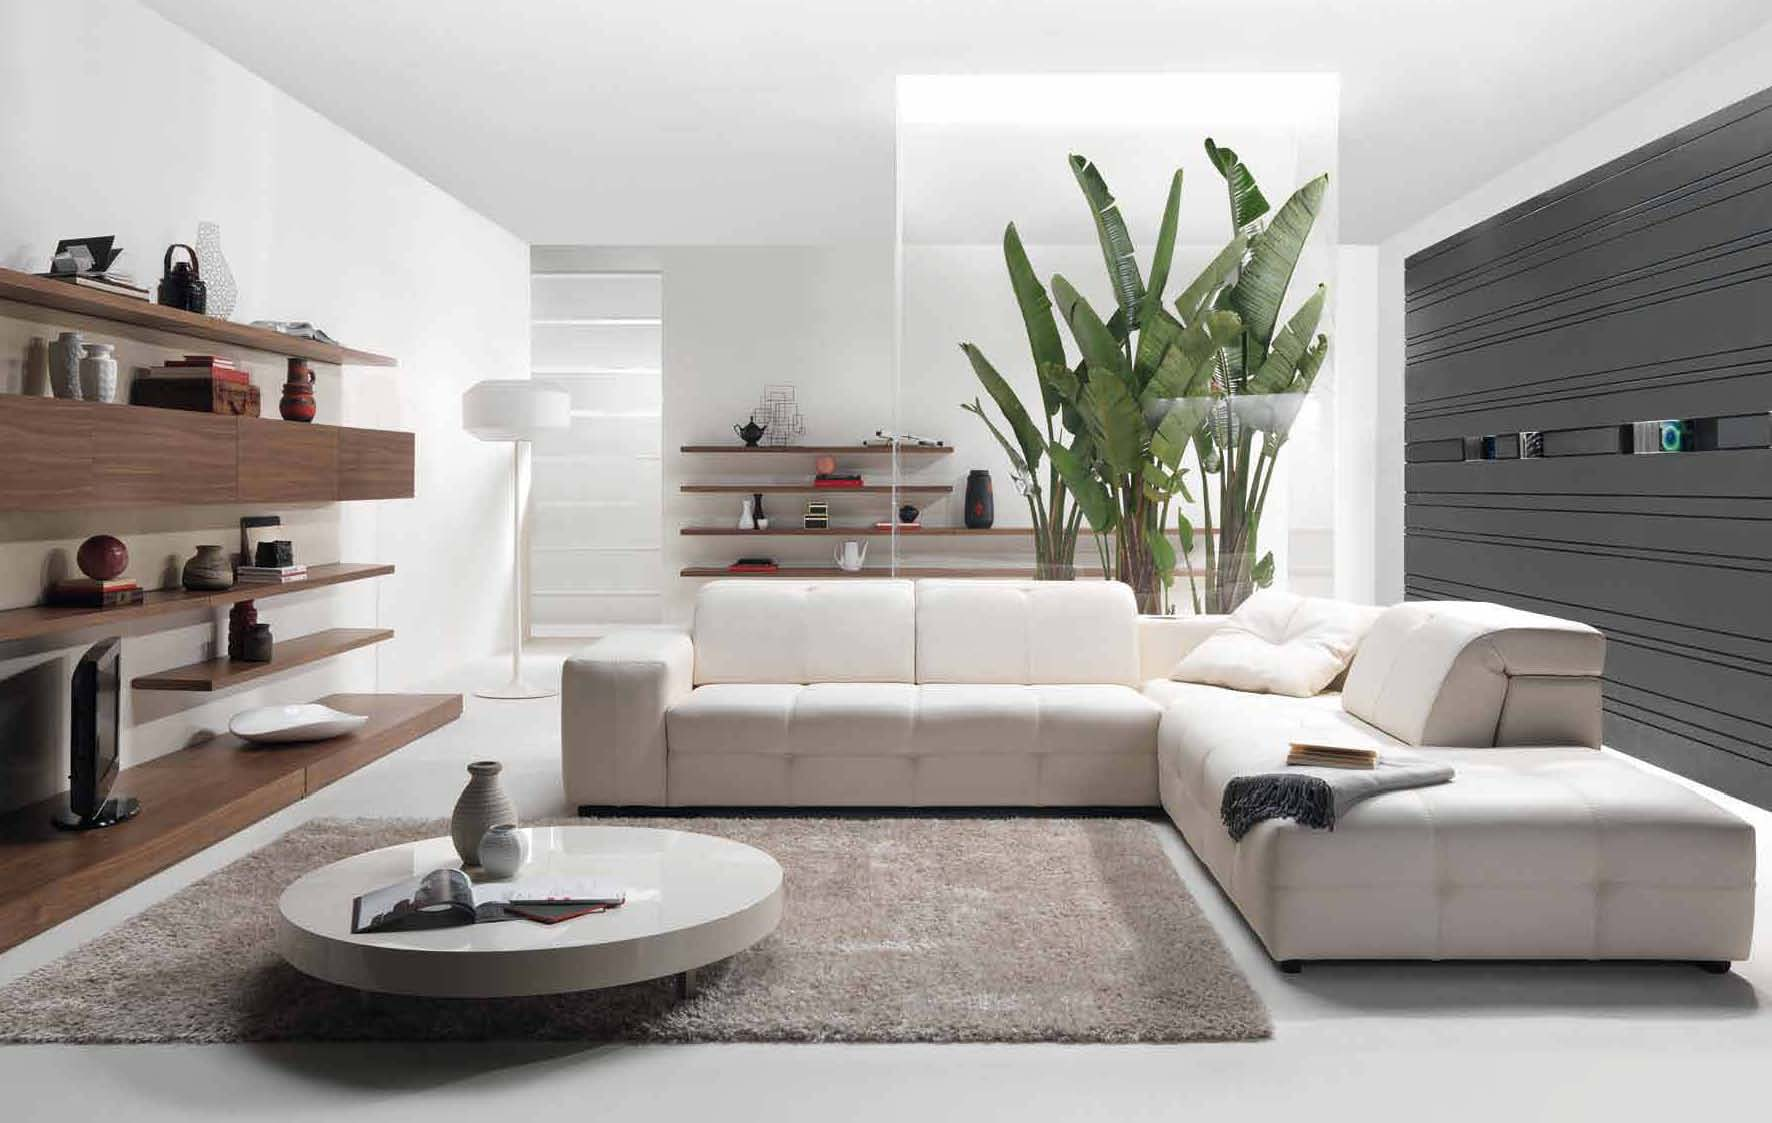 7 modern decorating style must haves decorilla for Modern minimalist interior design style